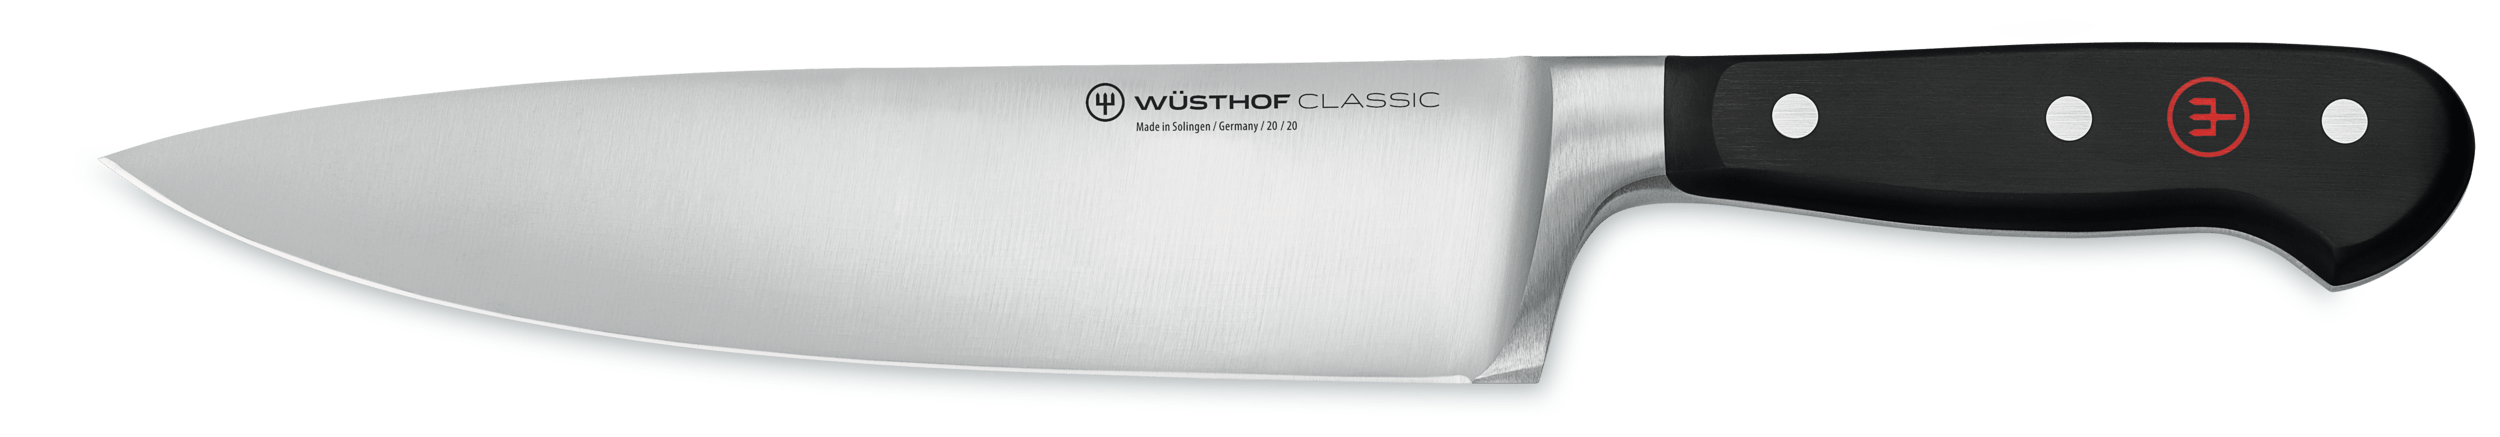 New Wüsthof Classic Cook's And Paring Knife Set 2-Piece 1120160206